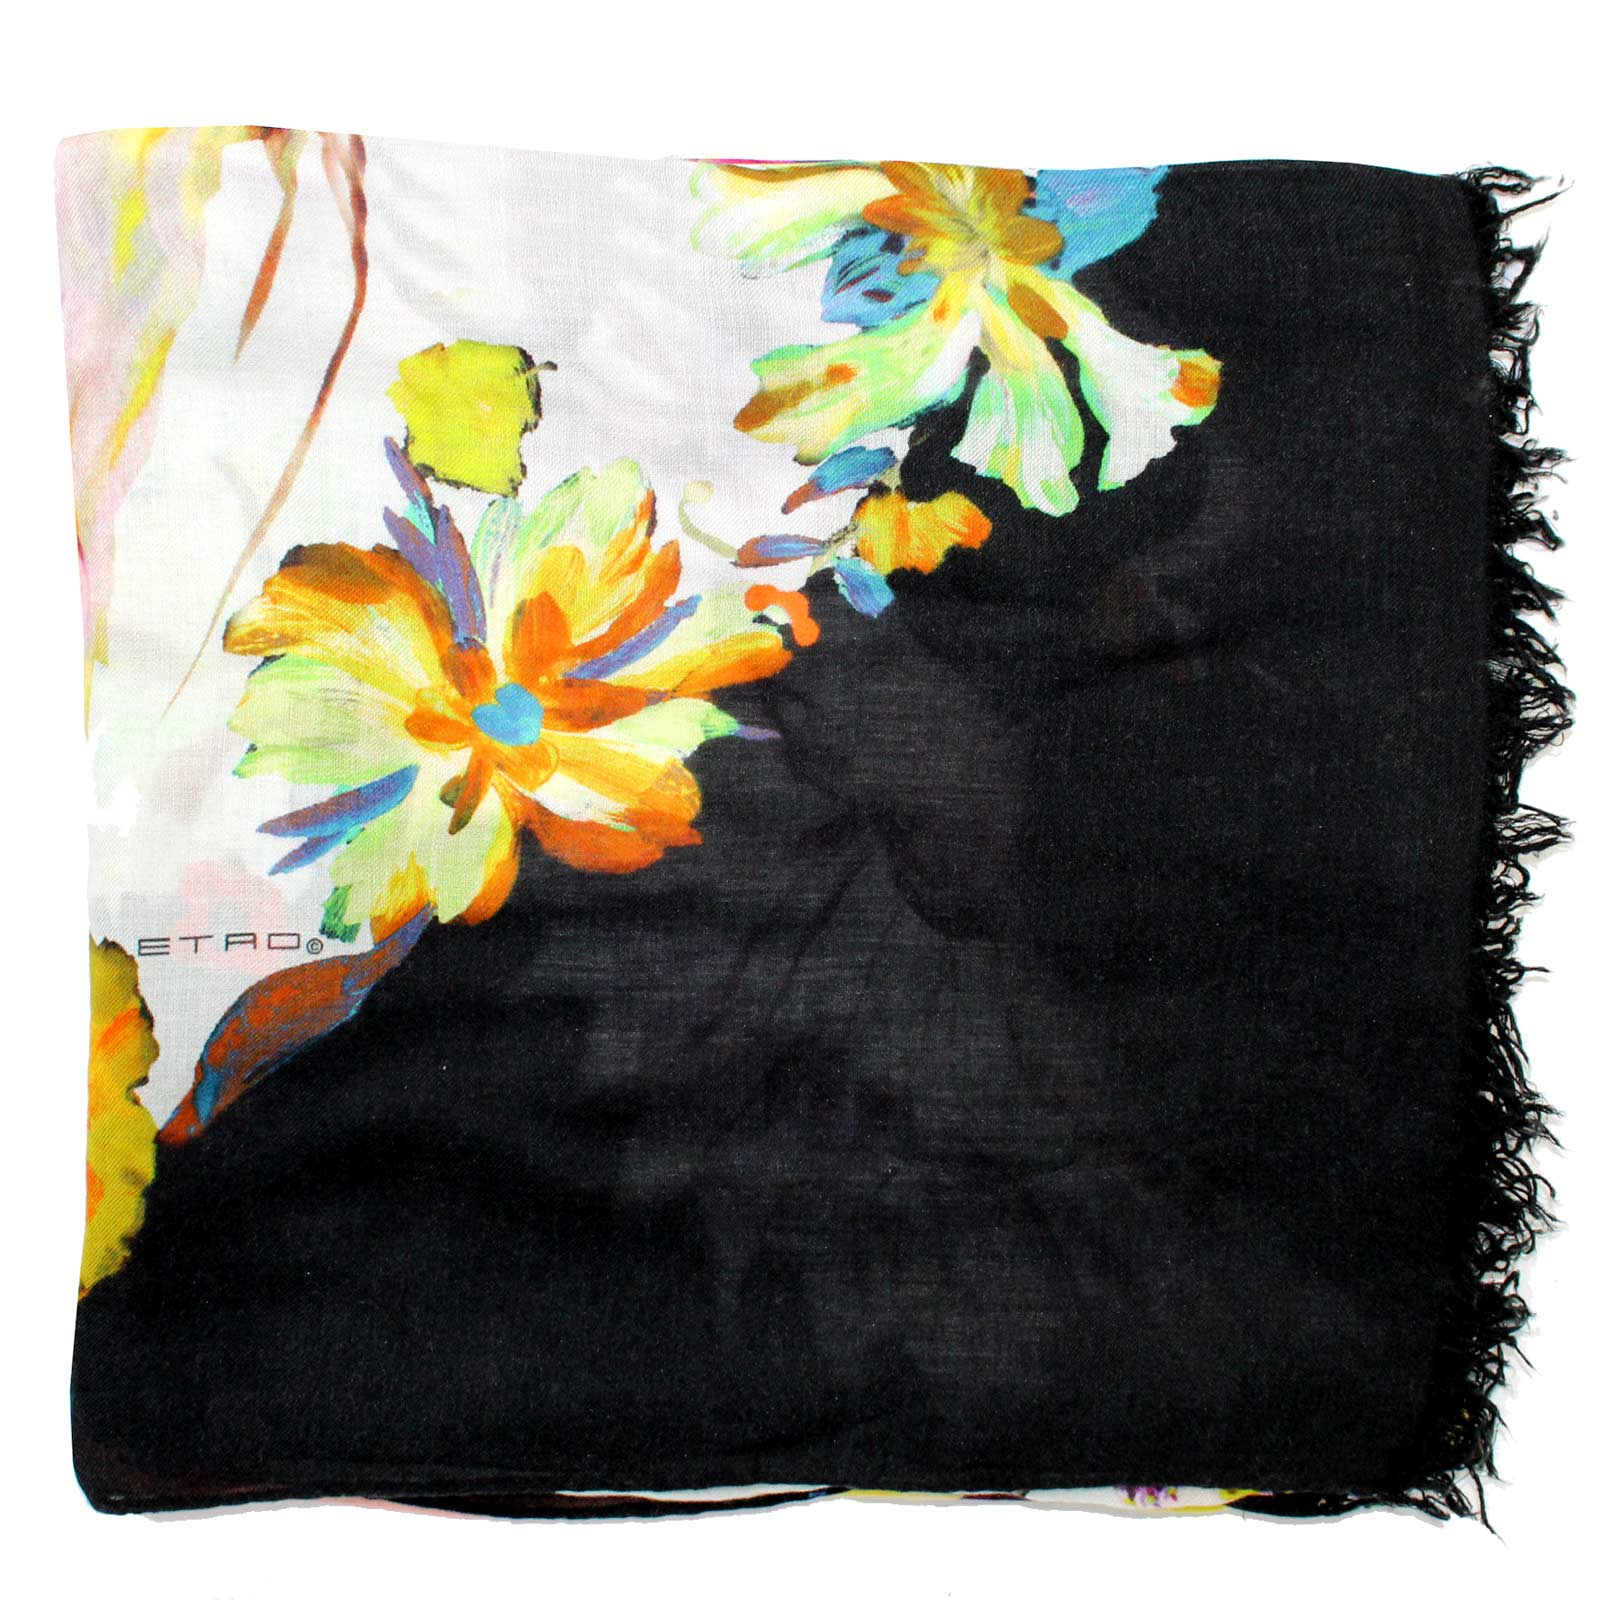 Etro Scarf Floral Design - Extra Large Modal Cashmere Wrap